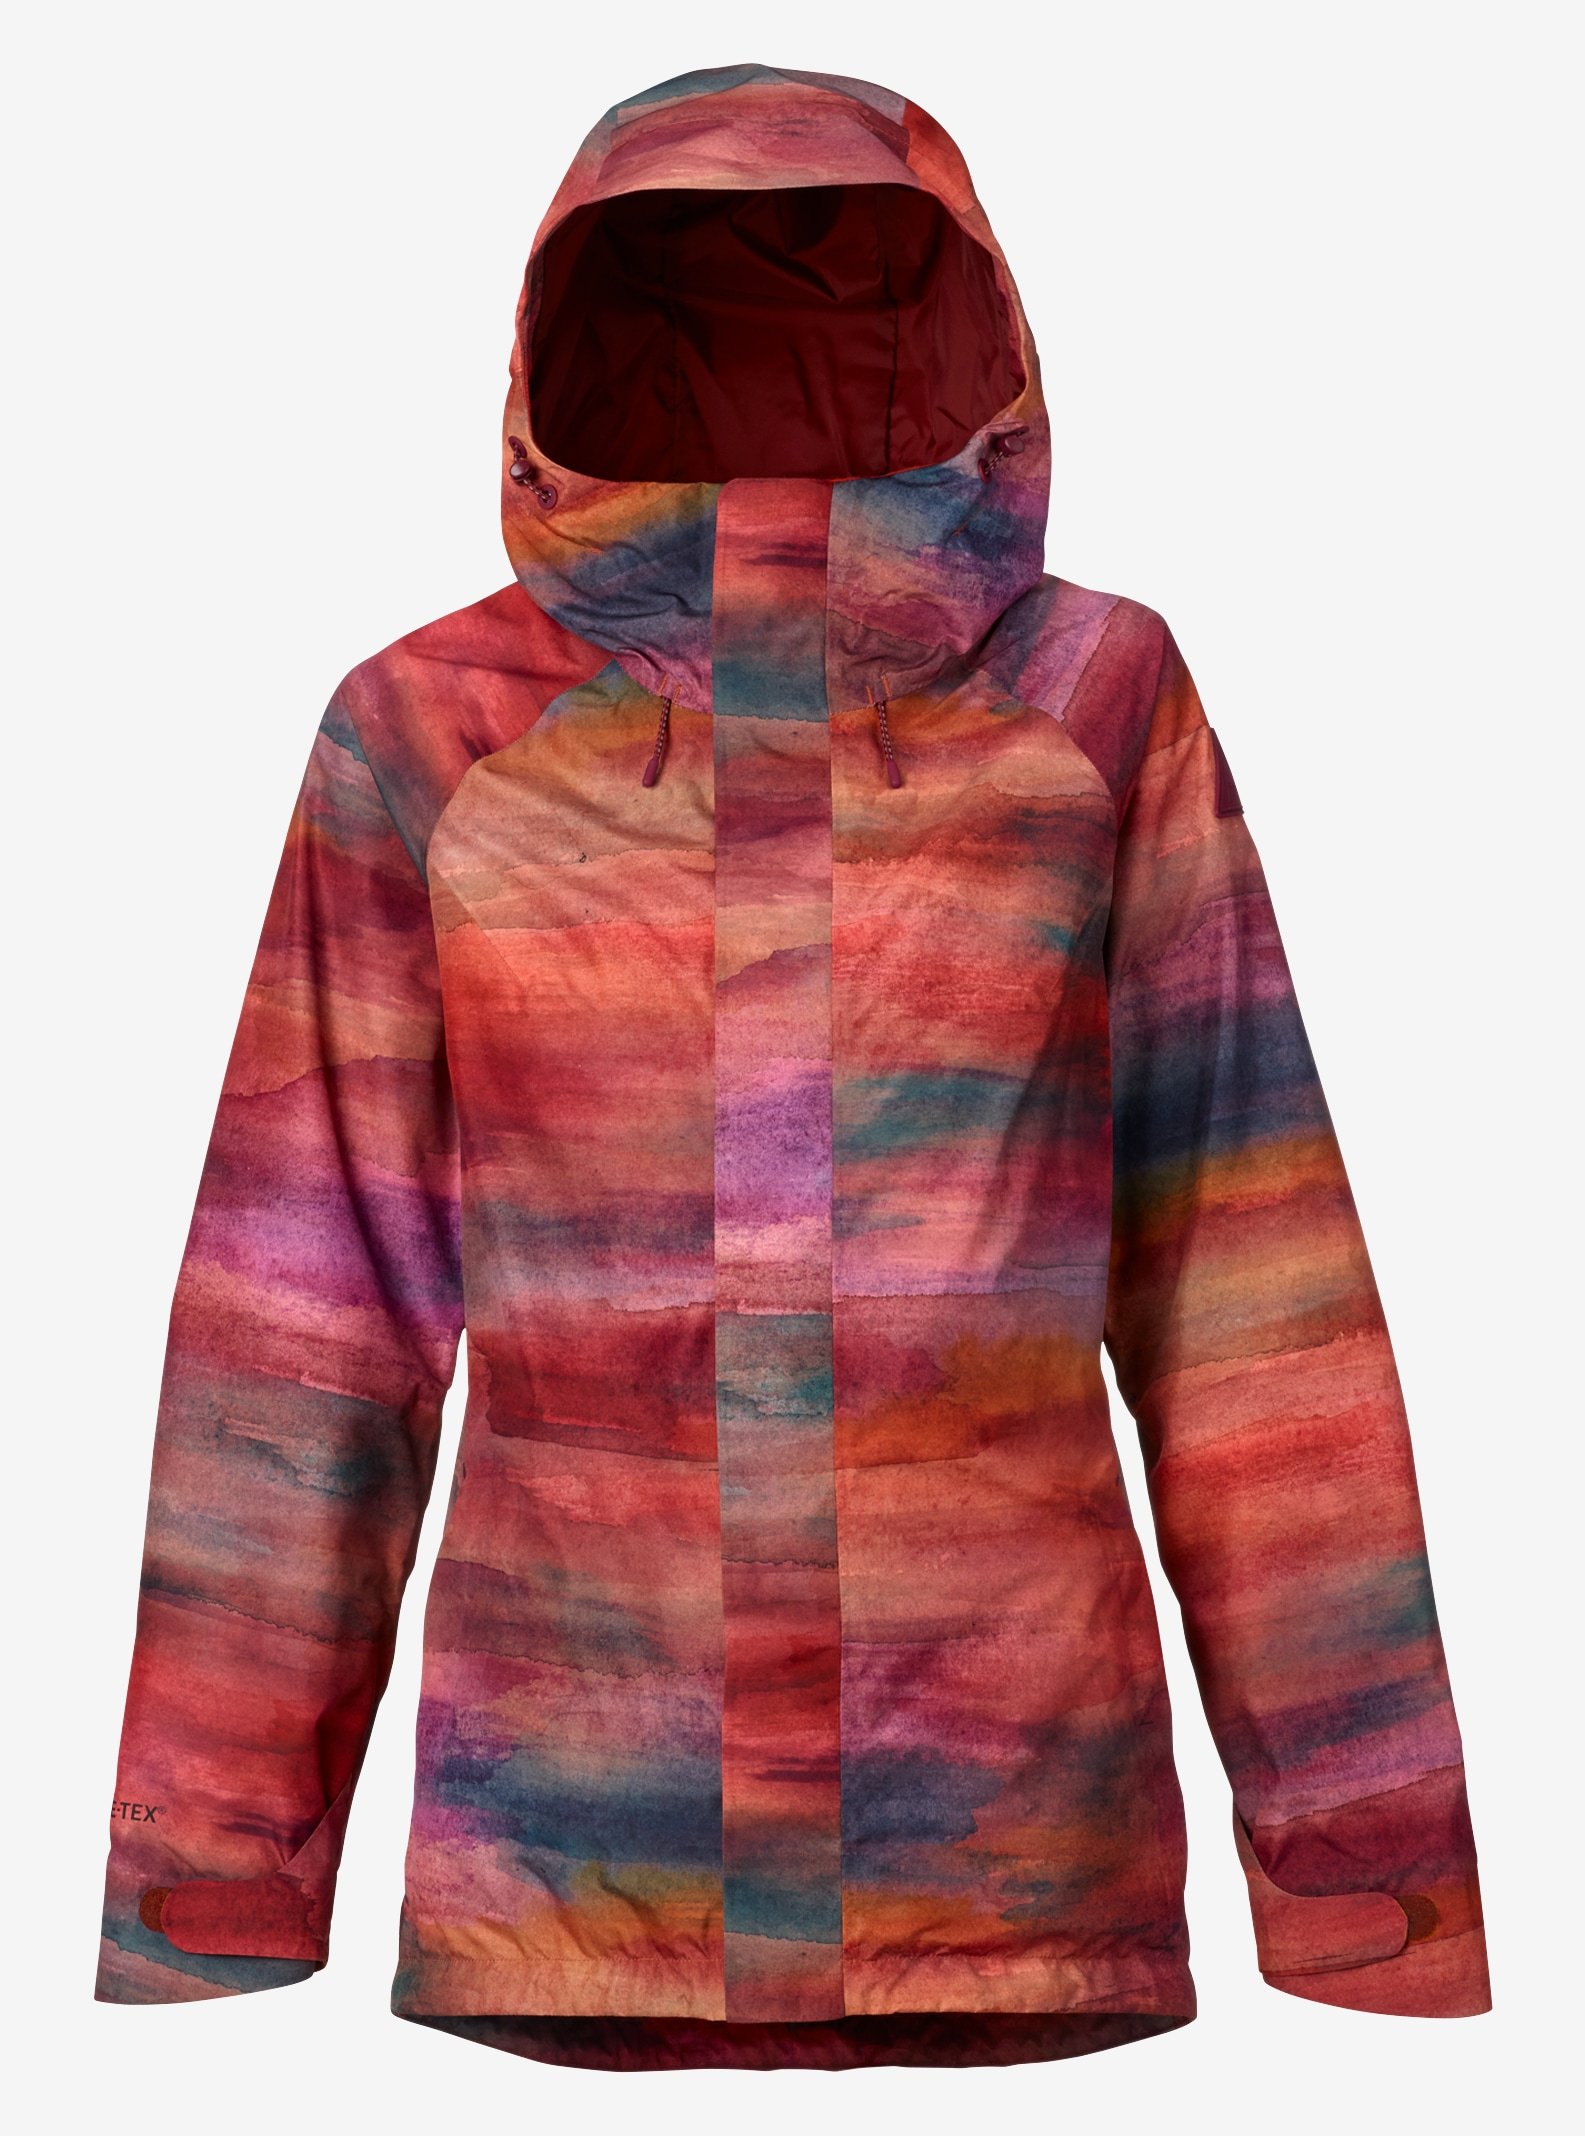 Women's Burton GORE-TEX® Rubix Jacket shown in Sedona